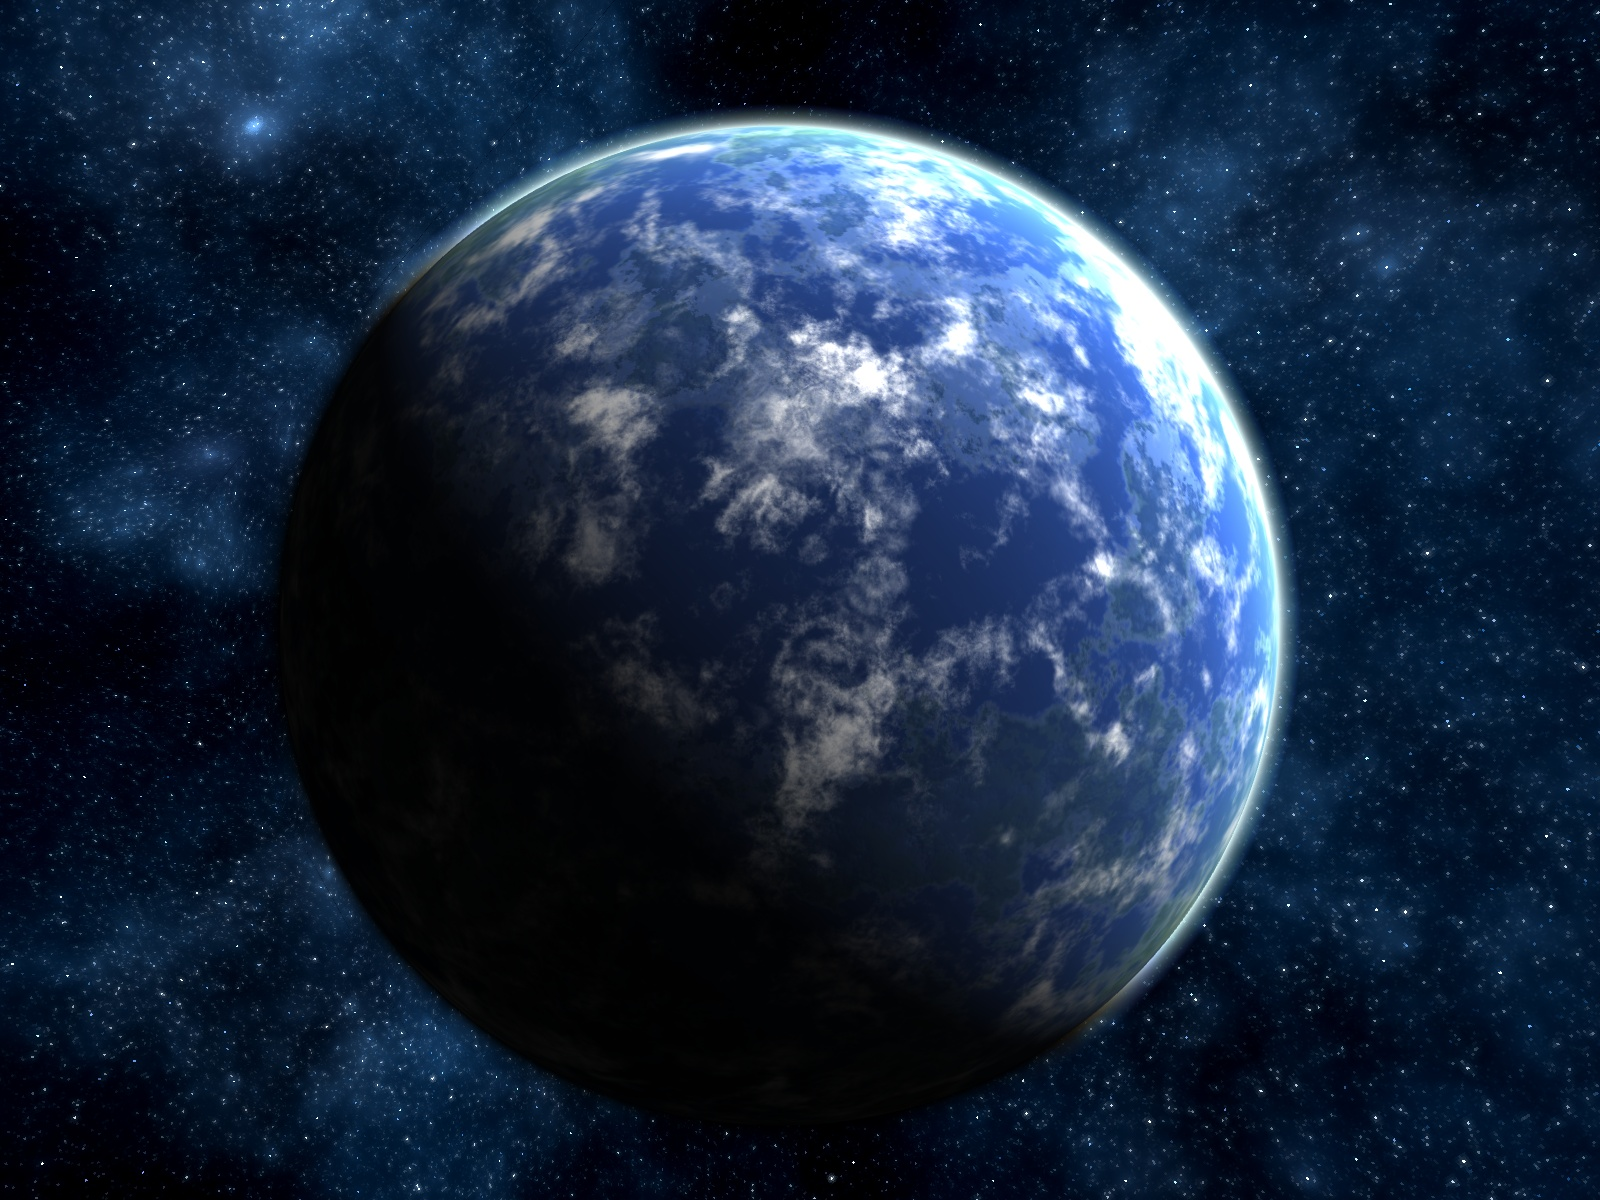 planets hd wallpapers - photo #40